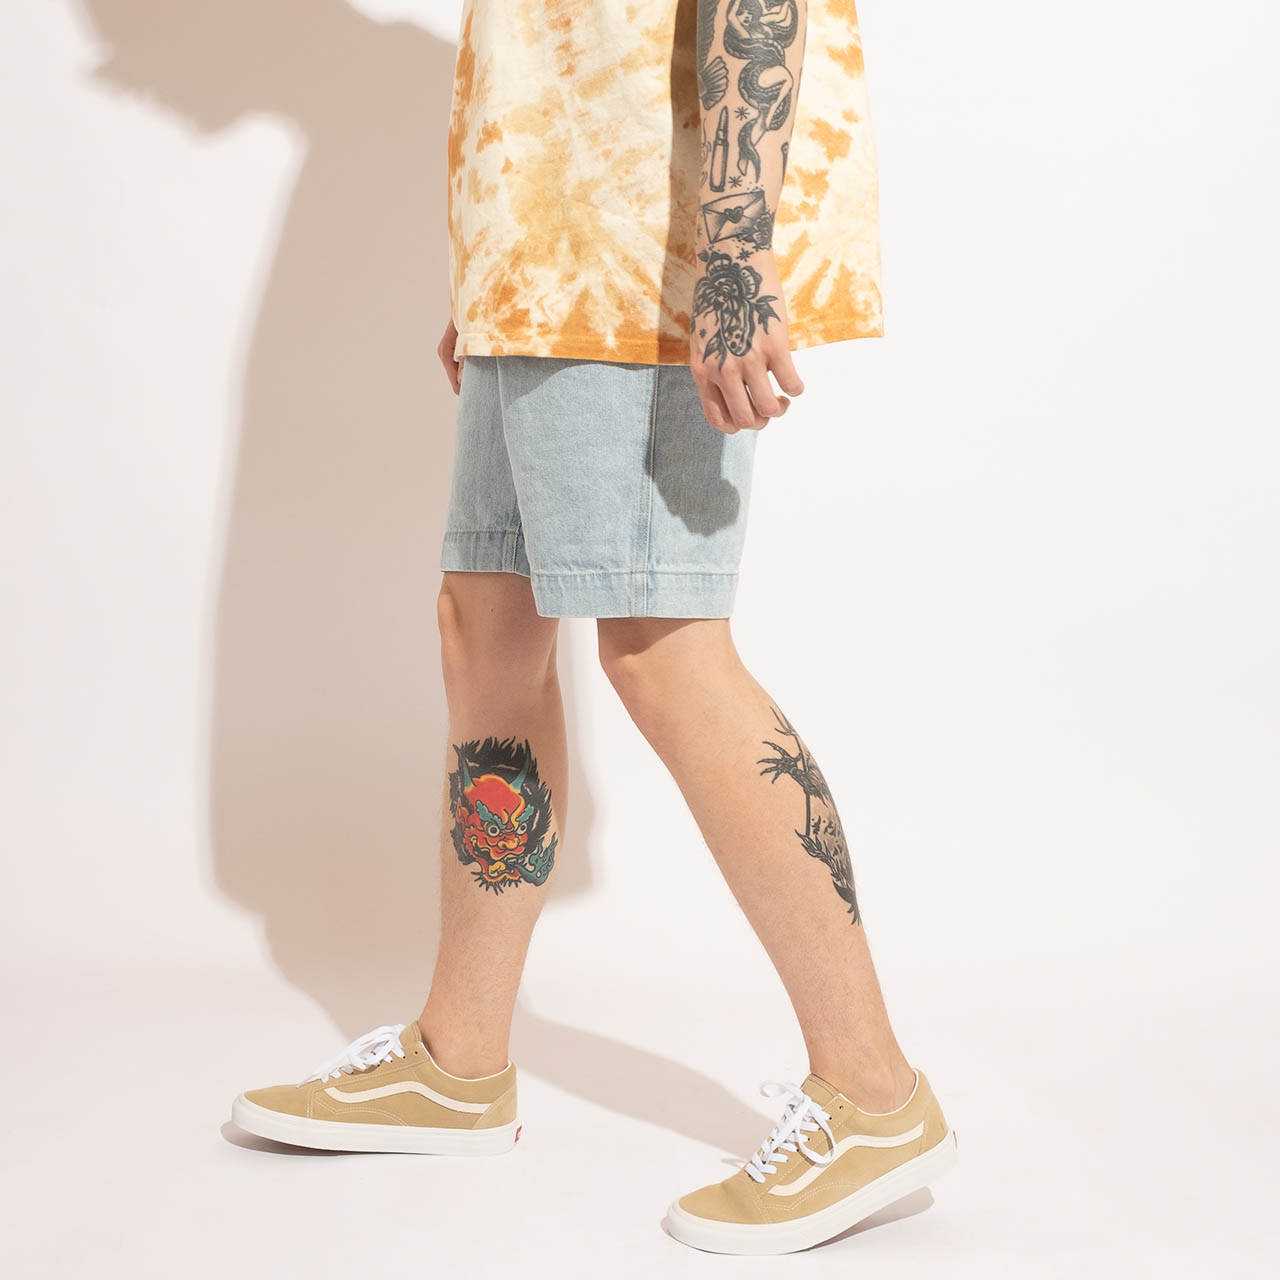 KARL KANI KK OG Rinse Denim Shorts – S